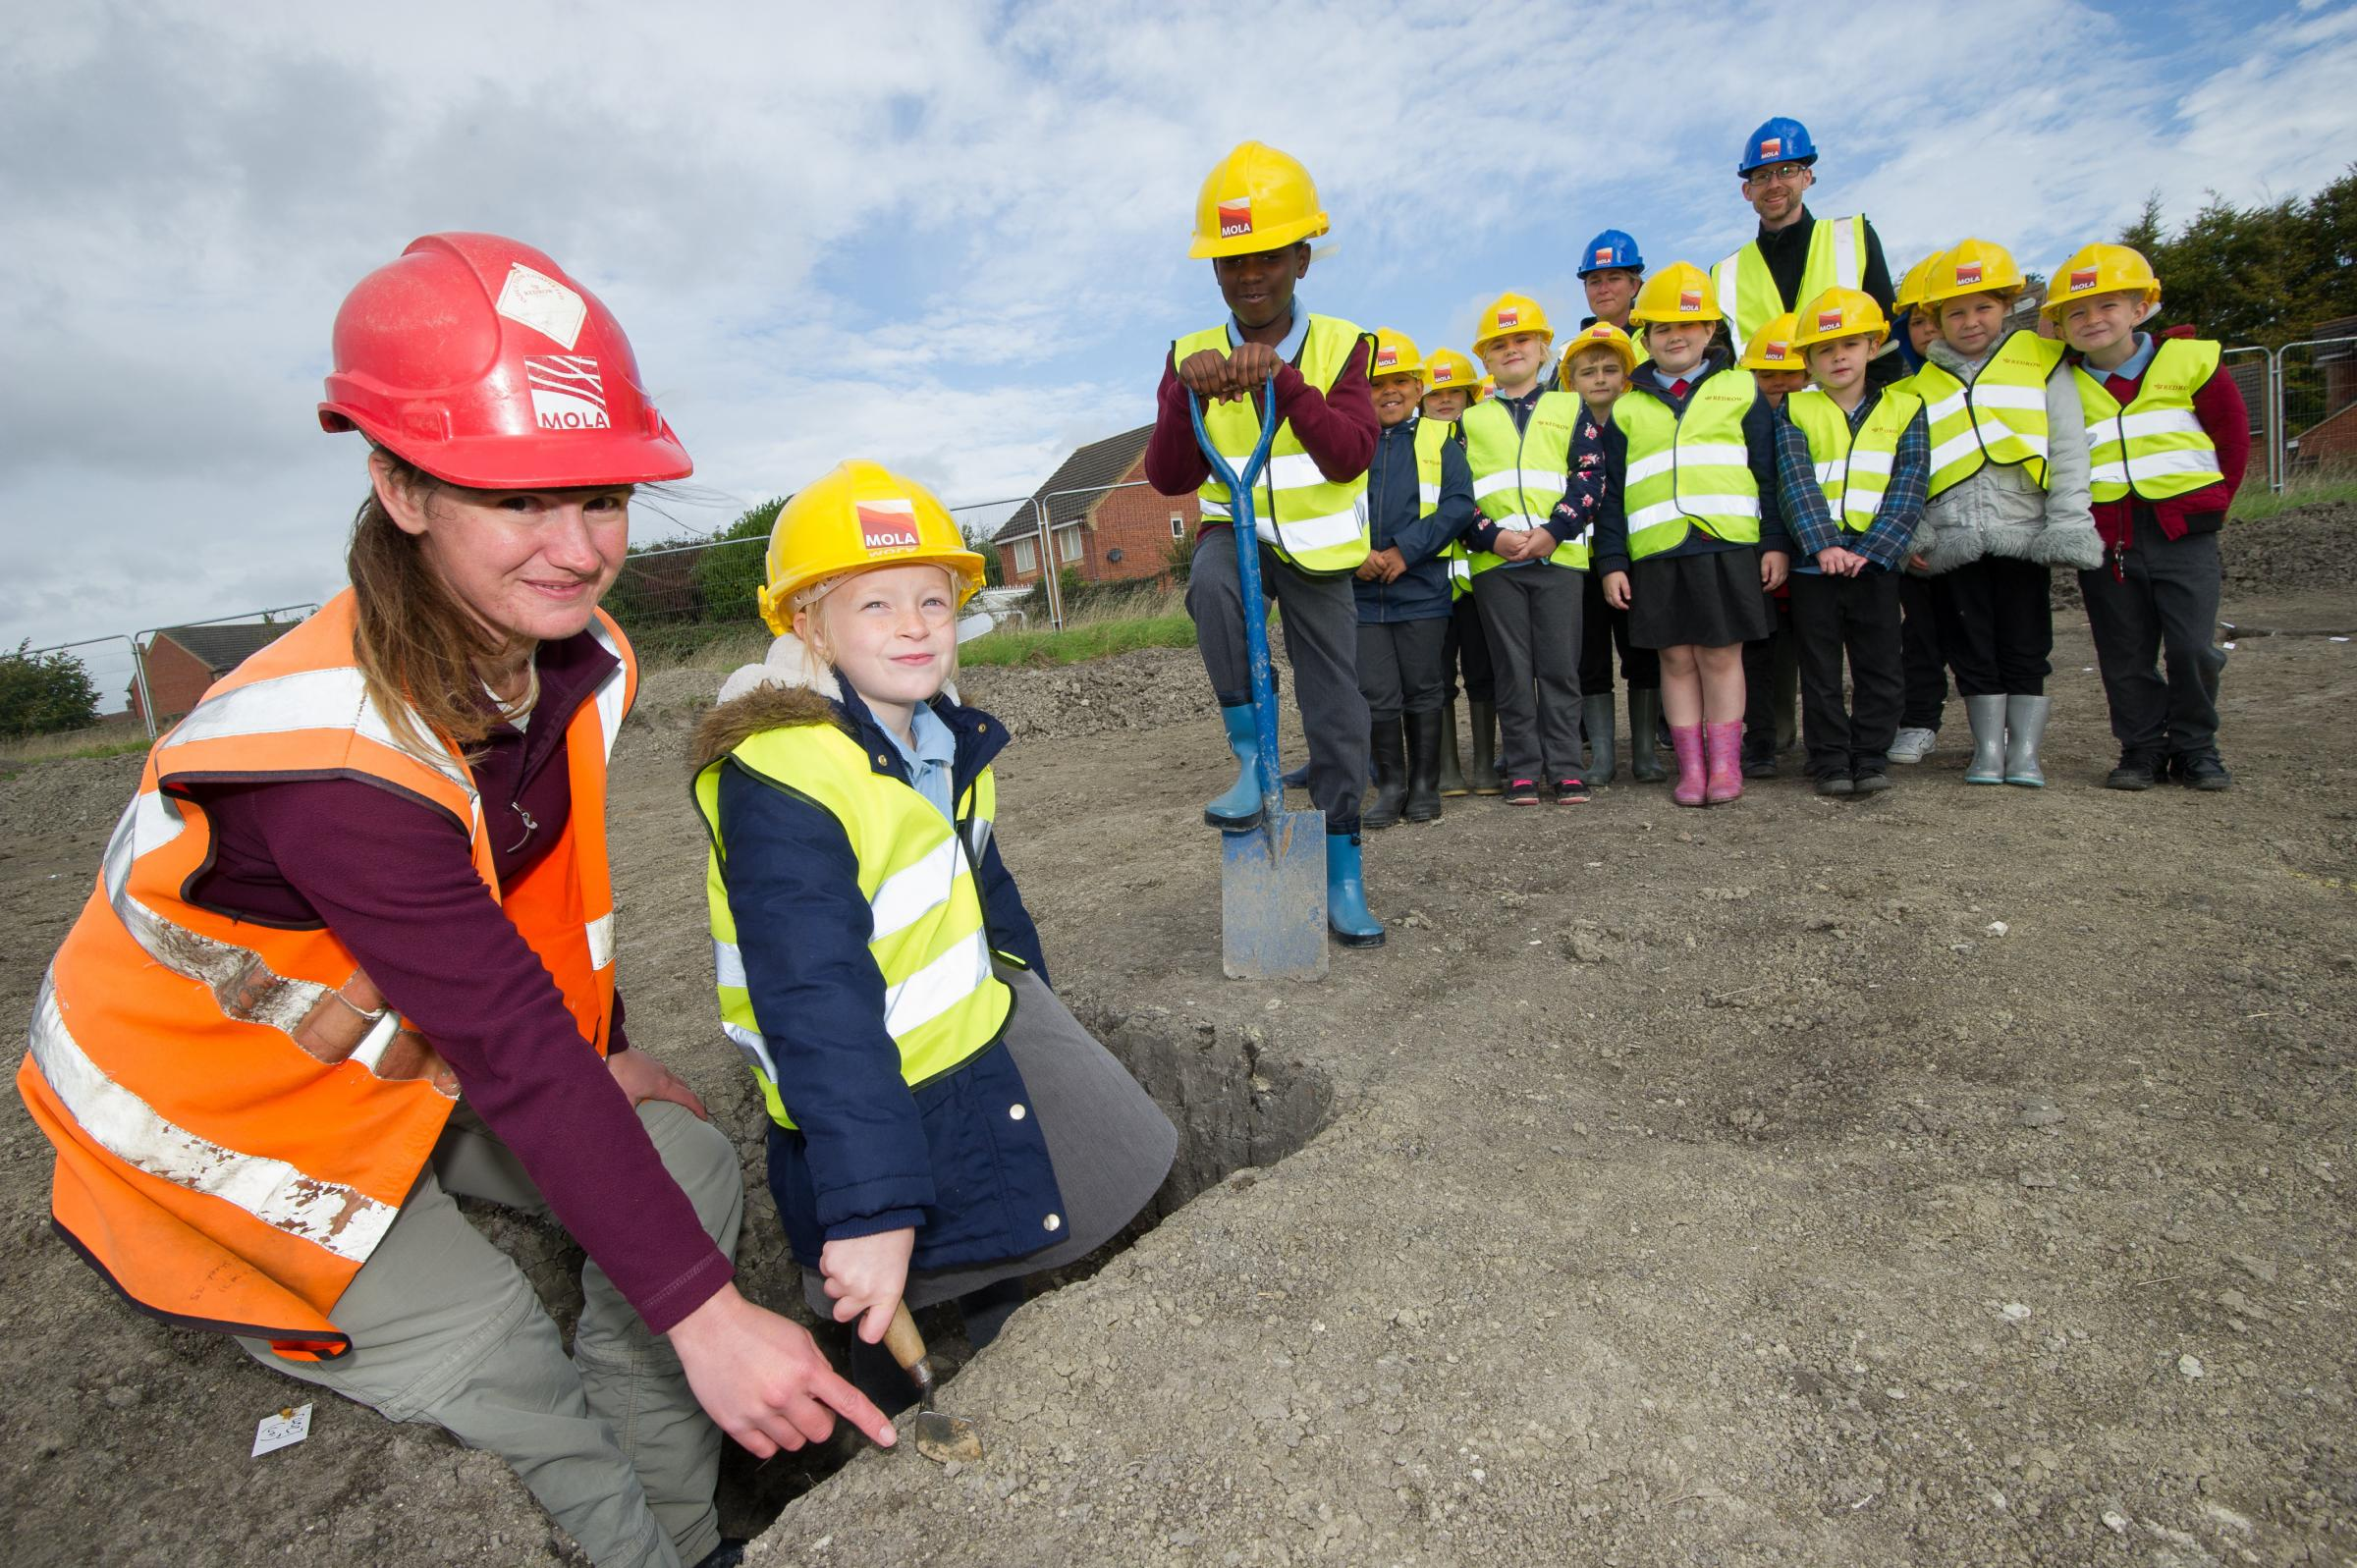 Pupils from St Blaise school in Didcot help Susan Porter dig for finds as they look around the site near them where Redrow Homes are going to build a new development - Matthew Power